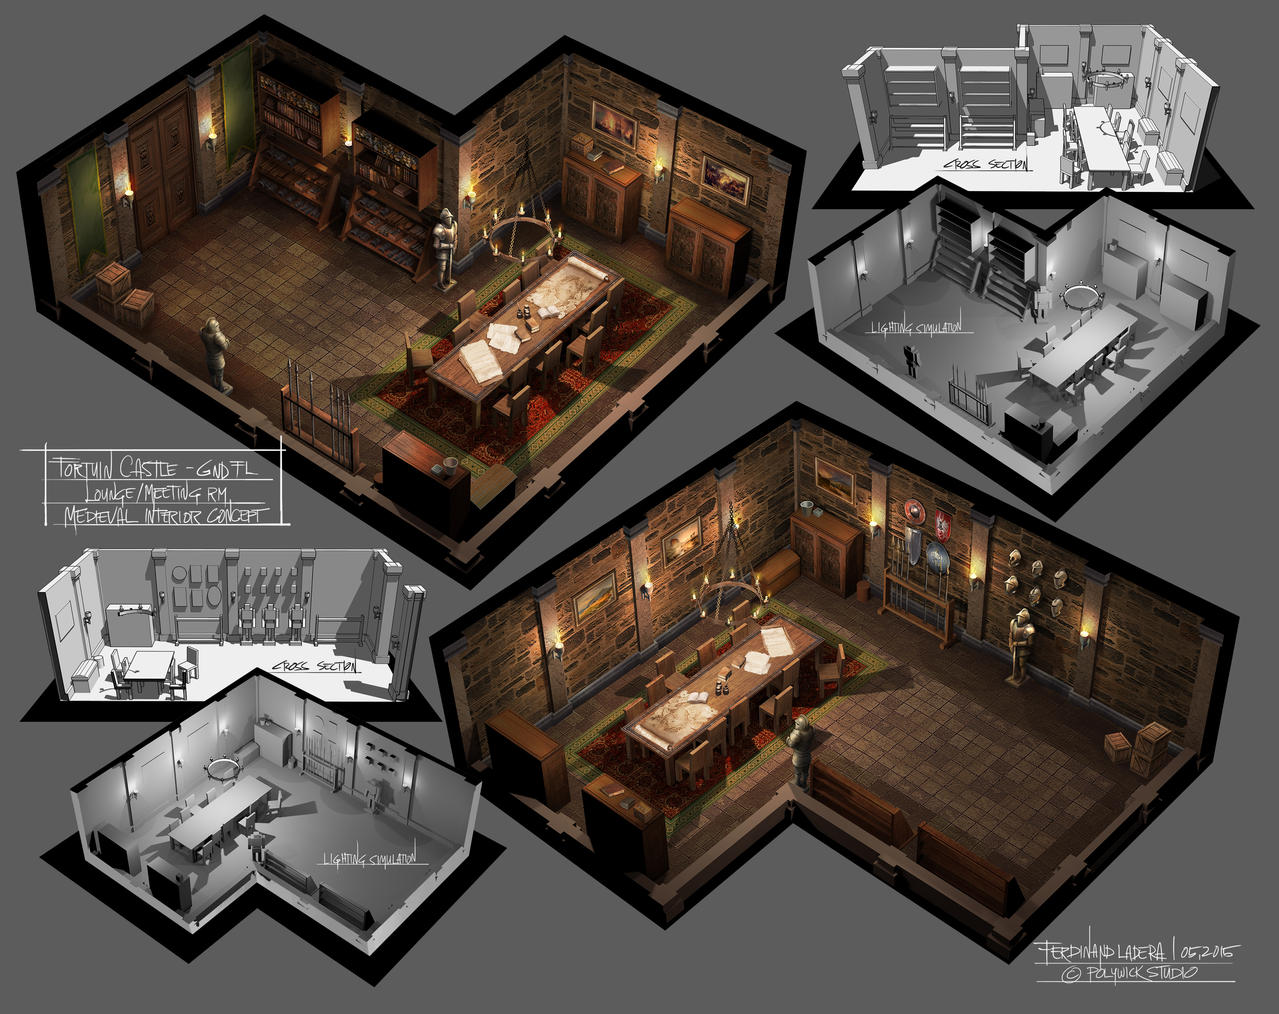 medieval interior meeting room by ferdinandladera on deviantart